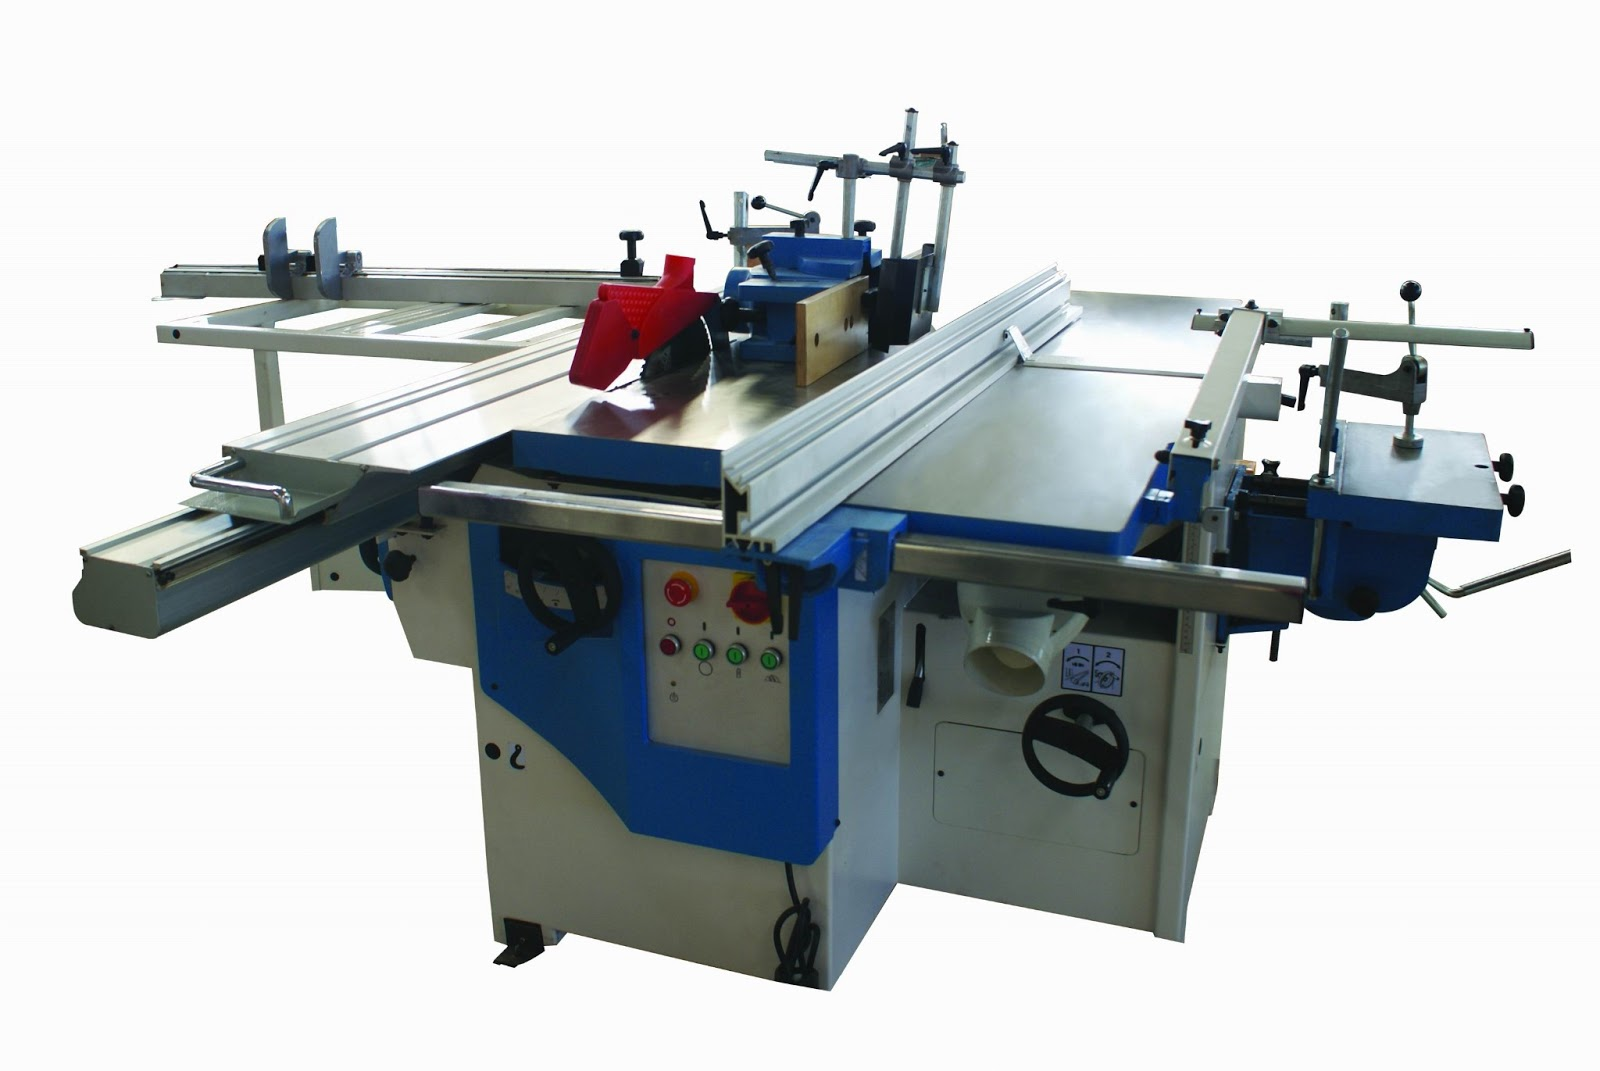 ... woodworking machinery wood based panels machinery woodworking benches